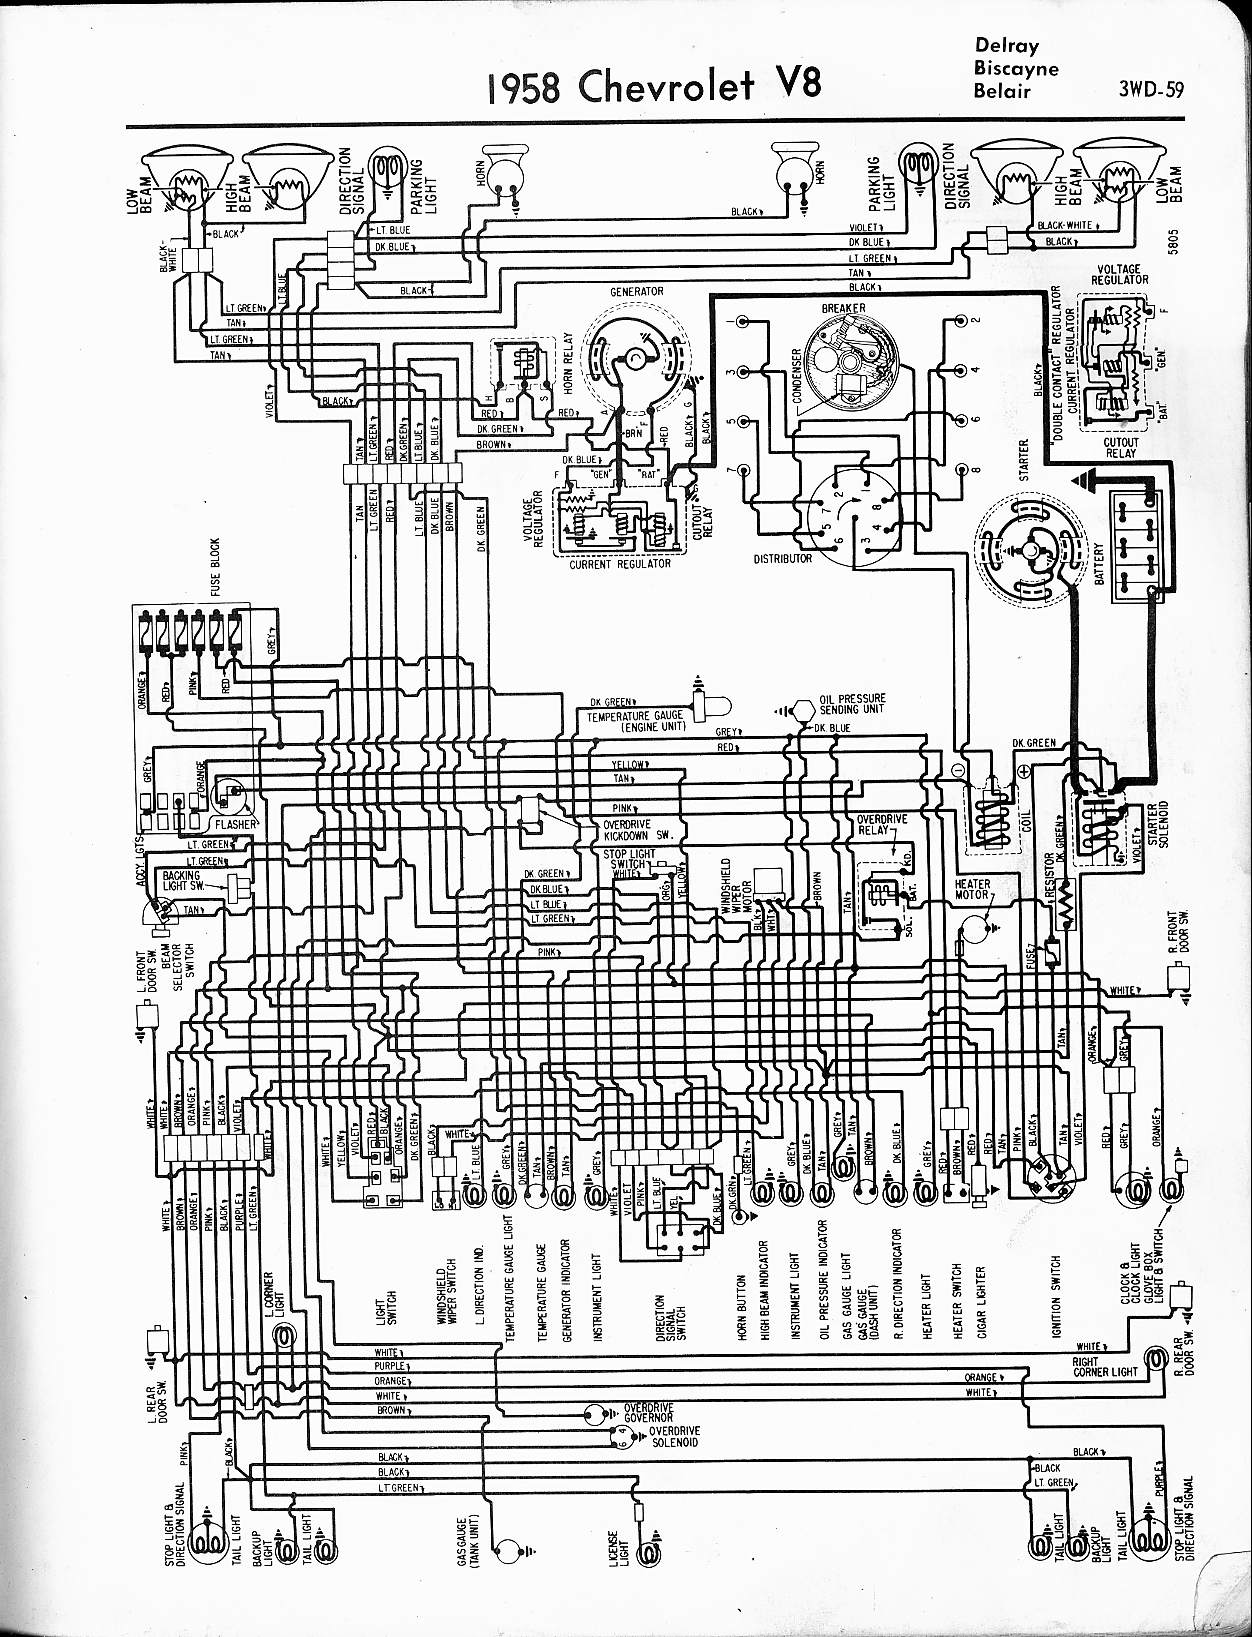 MWireChev58_3WD 059 57 65 chevy wiring diagrams chevy wiring schematics at soozxer.org